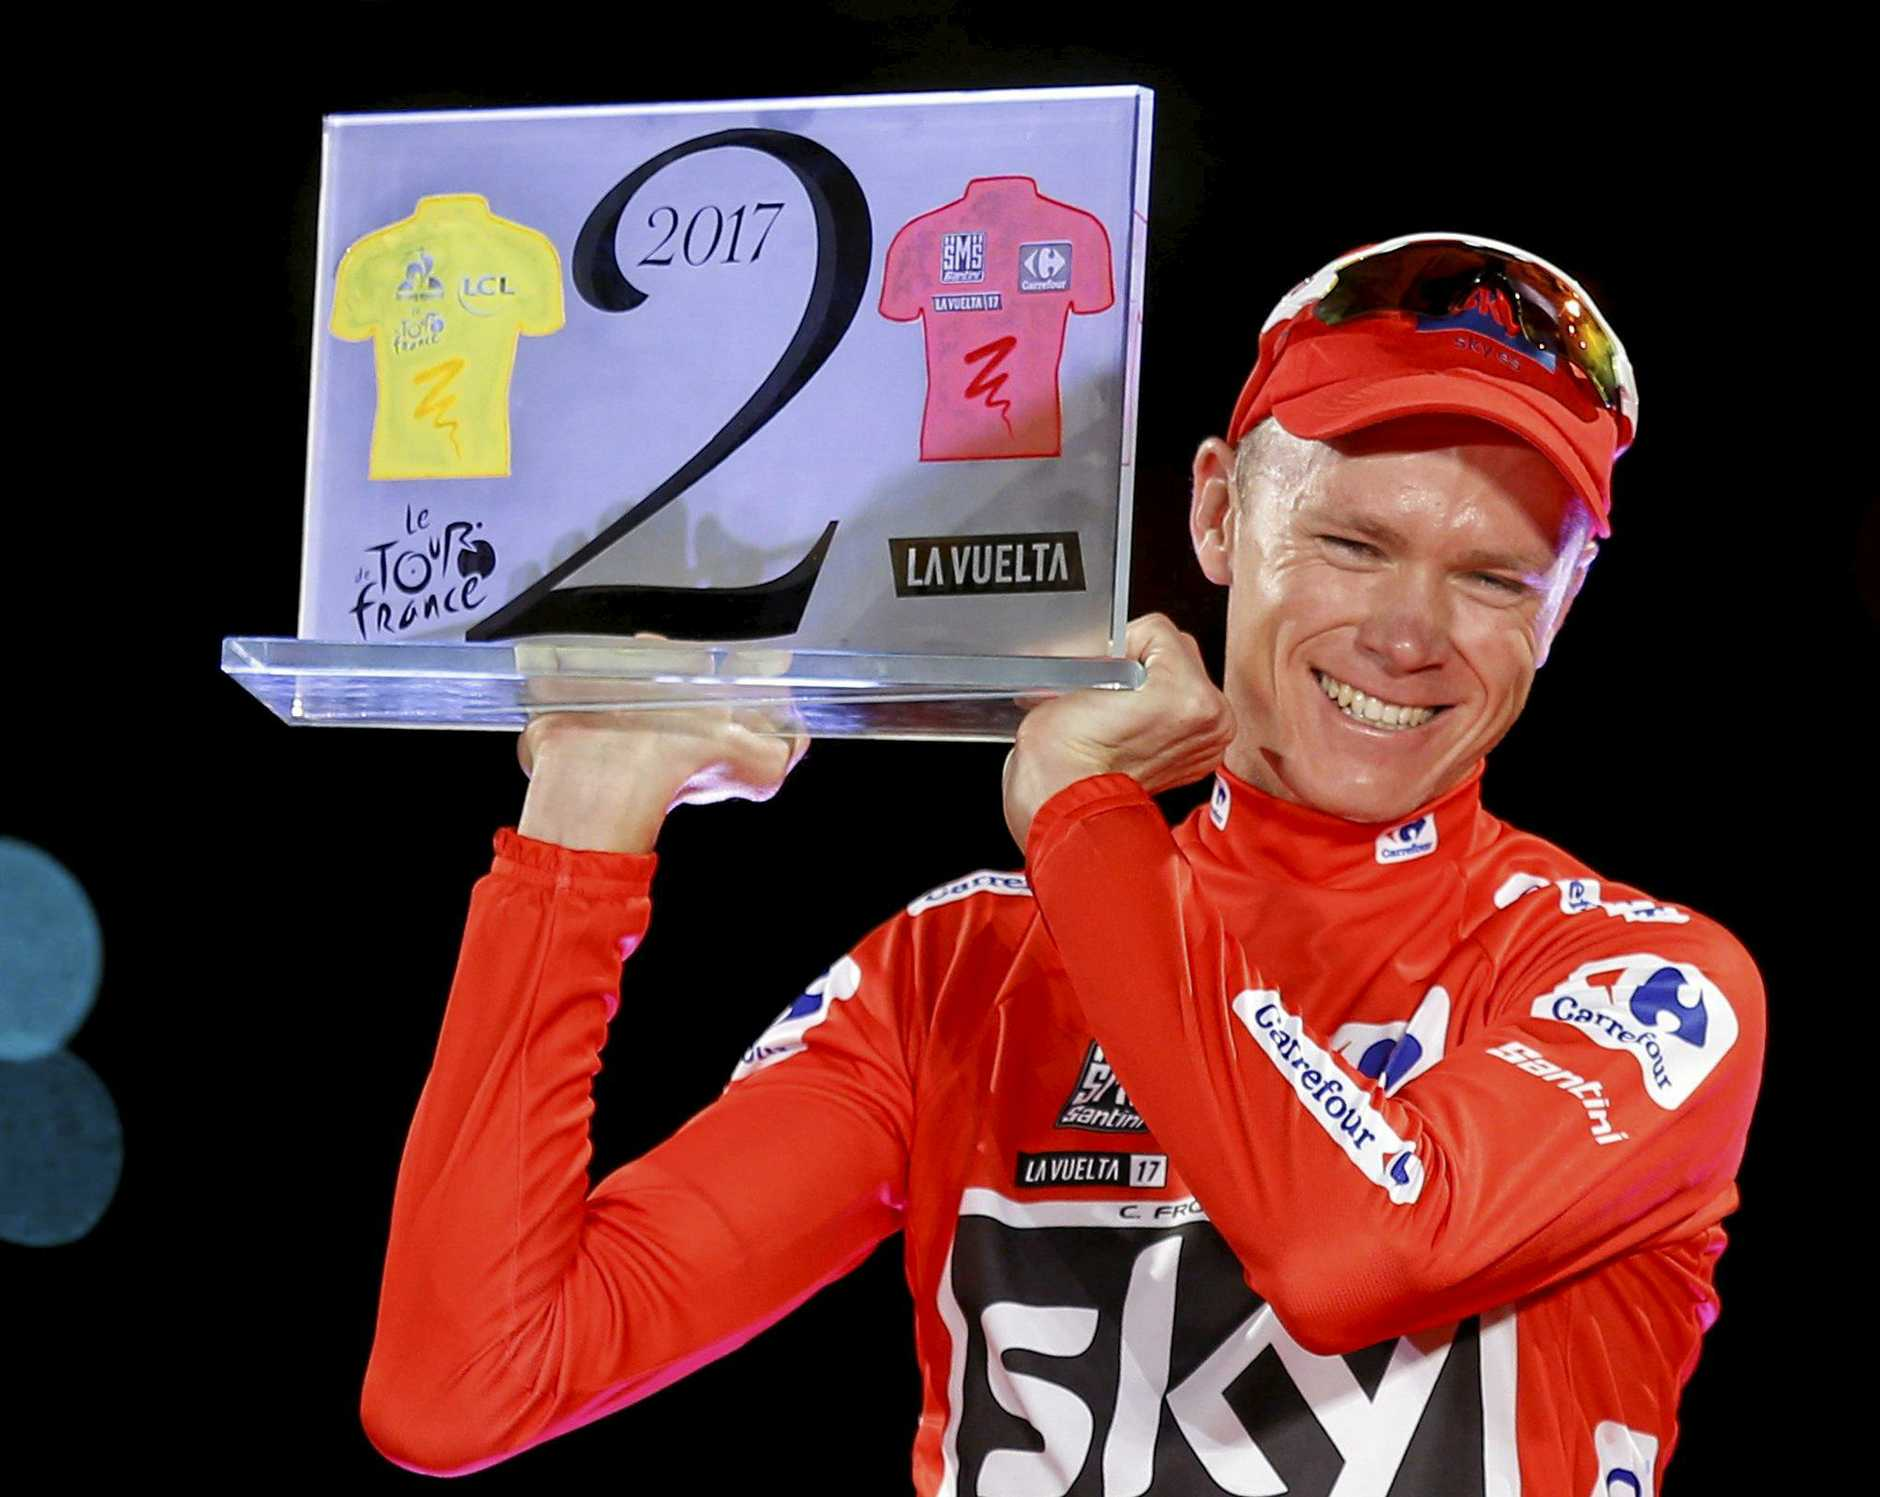 Britain's Chris Froome celebrates on the podium in Madrid after winning last year's Spanish Vuelta.